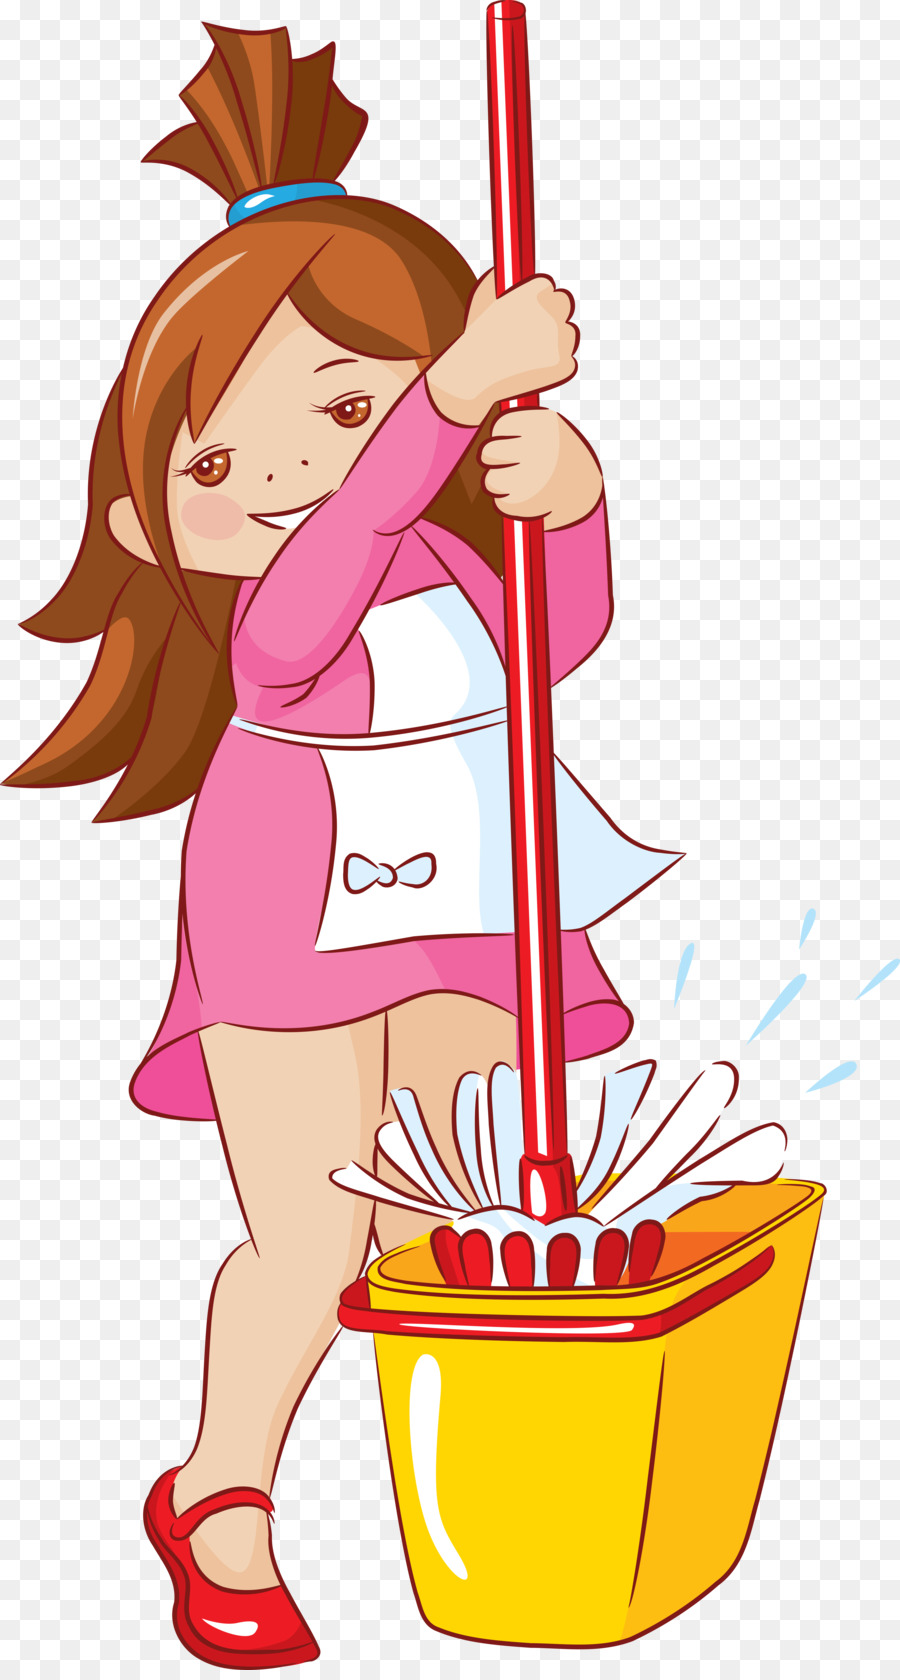 Housekeeping clipart. Cleaning child clip art